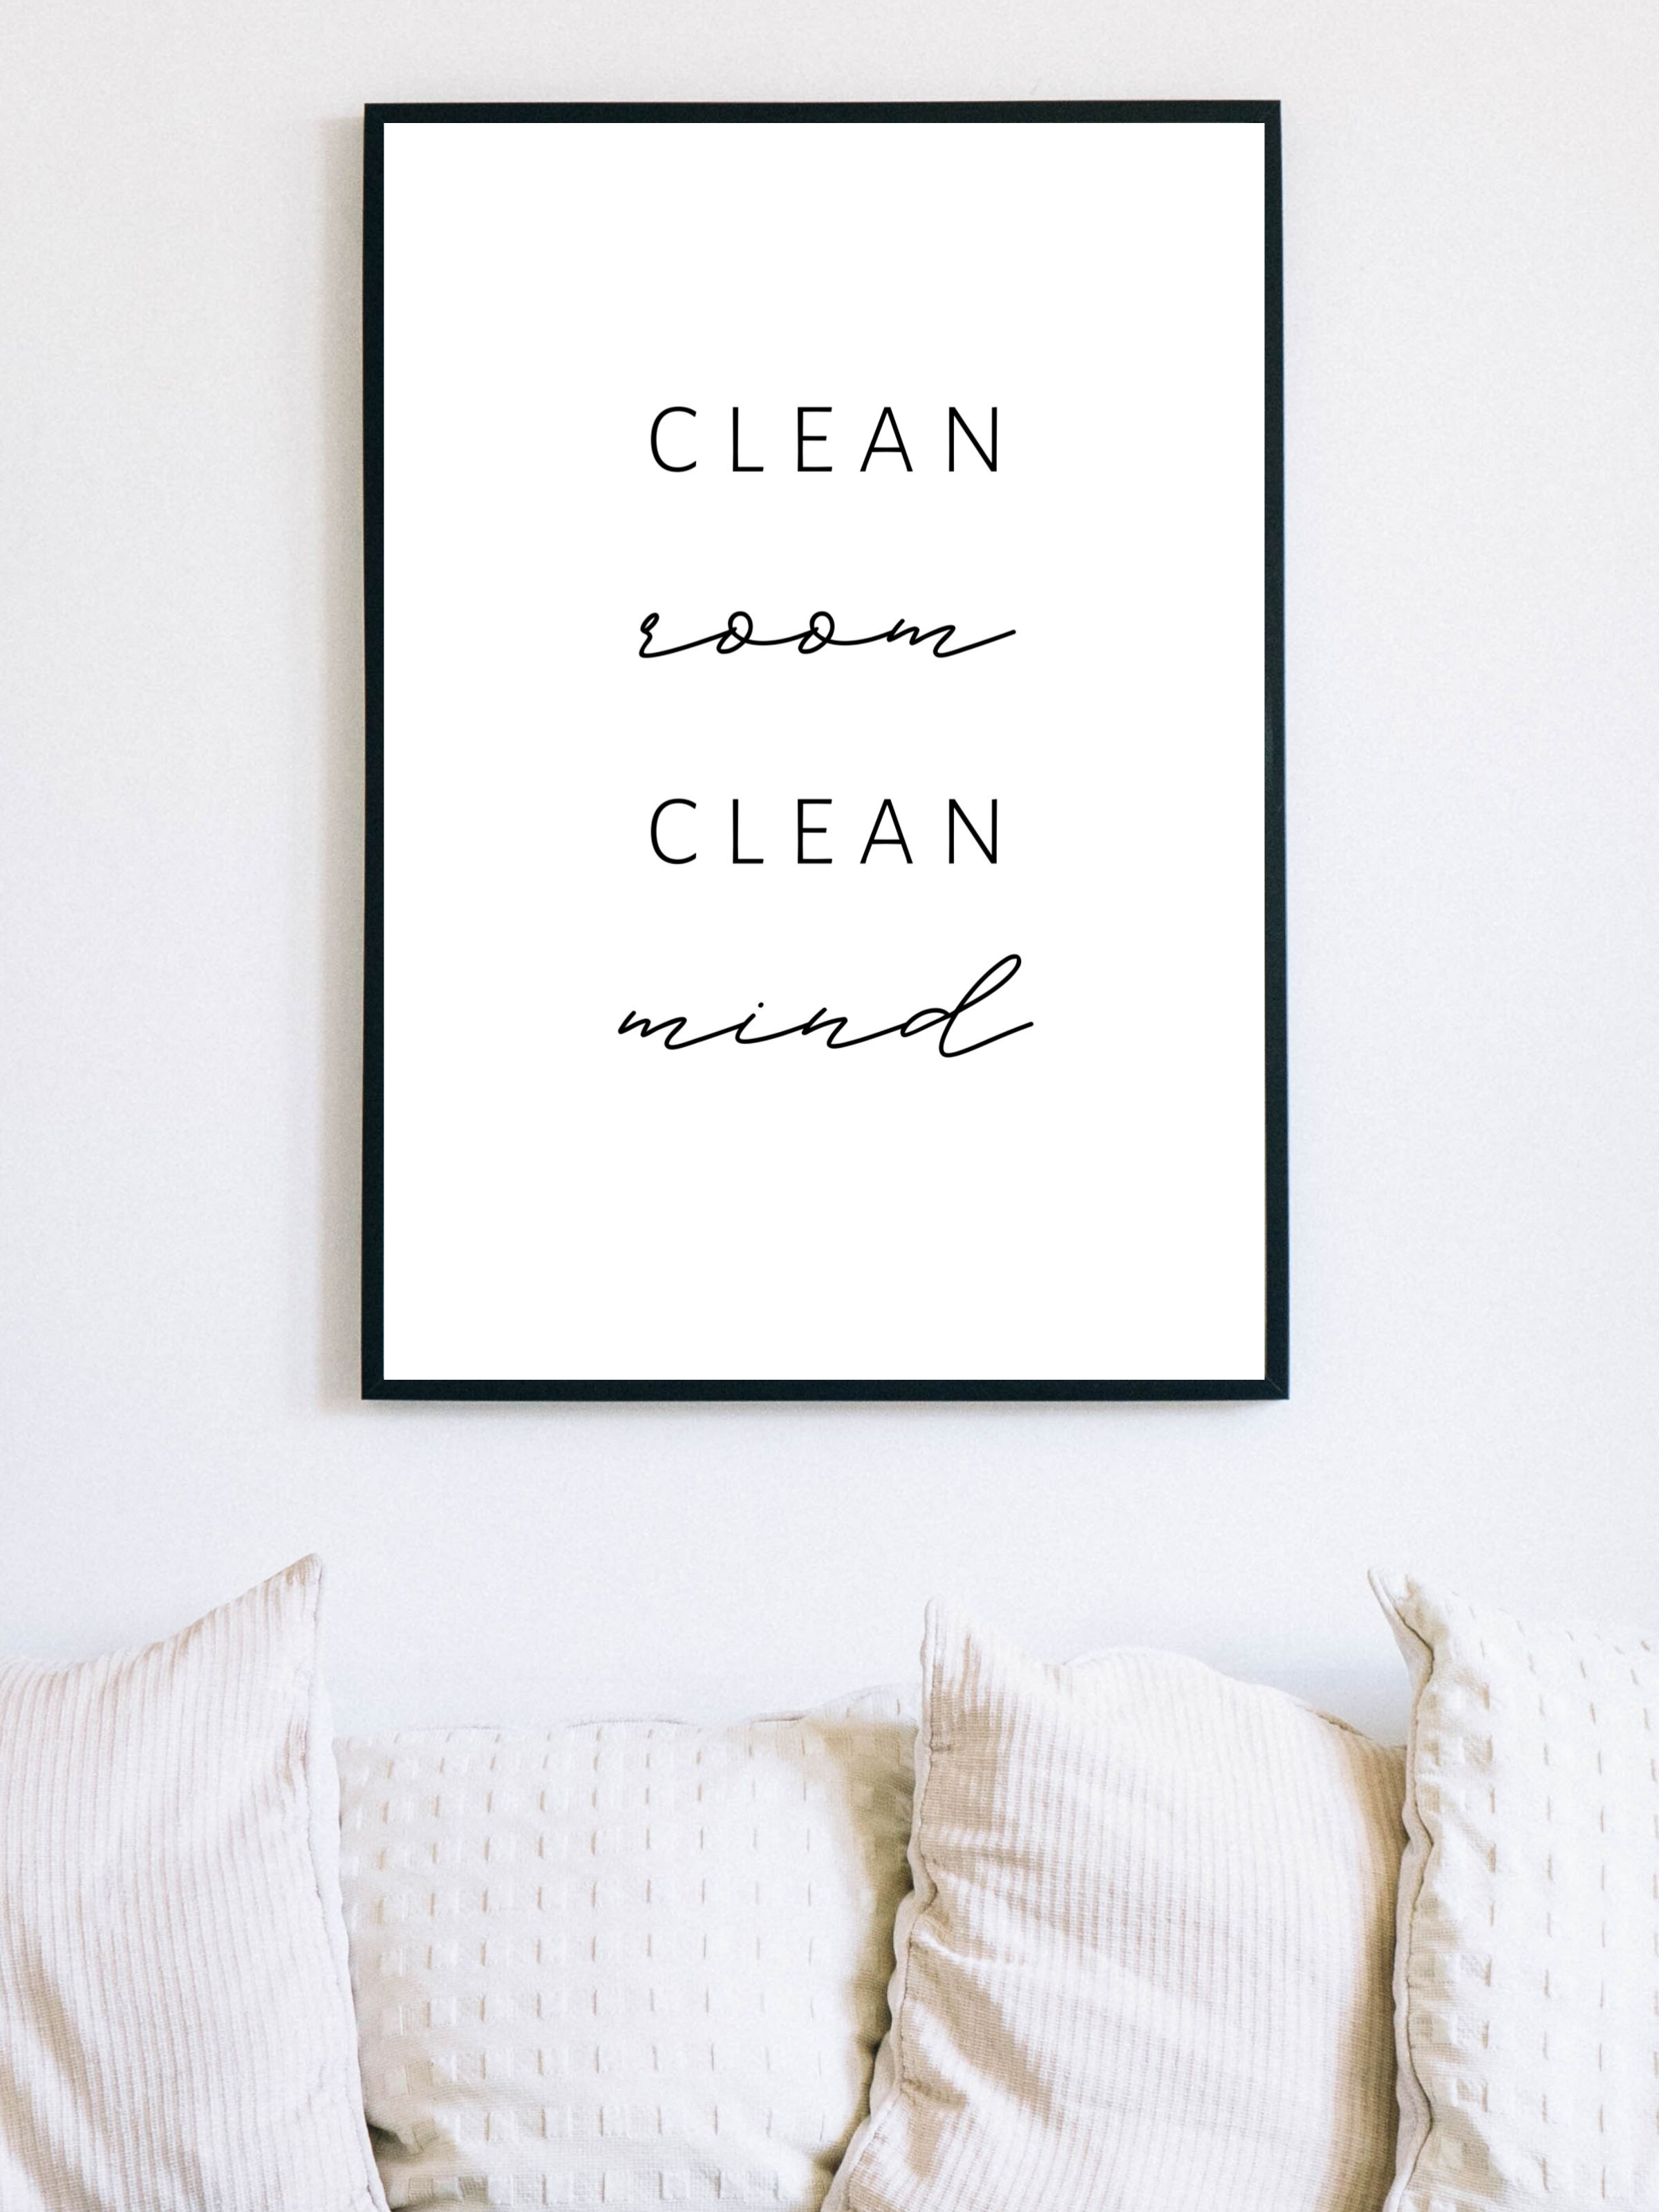 Clean Bedroom Tumblr Png Free Clean Bedroom Tumblr Png Transparent Images 132634 Pngio